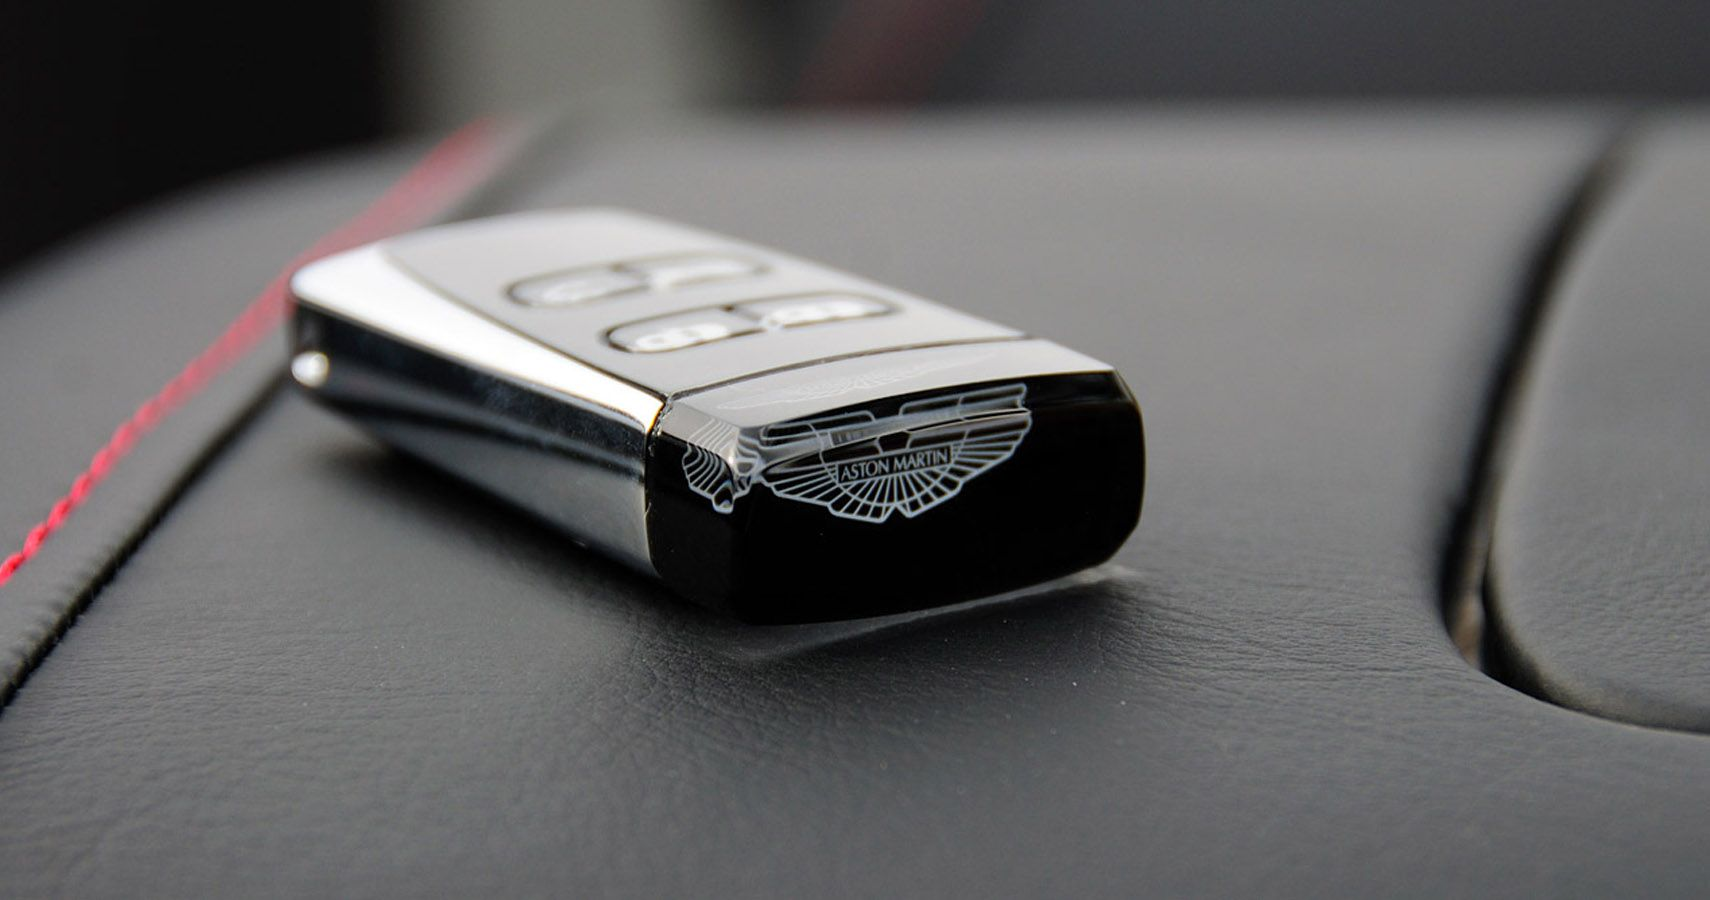 Aston Martin S Sapphire Crystal 9 More Of The Coolest Luxury Car Key Fobs